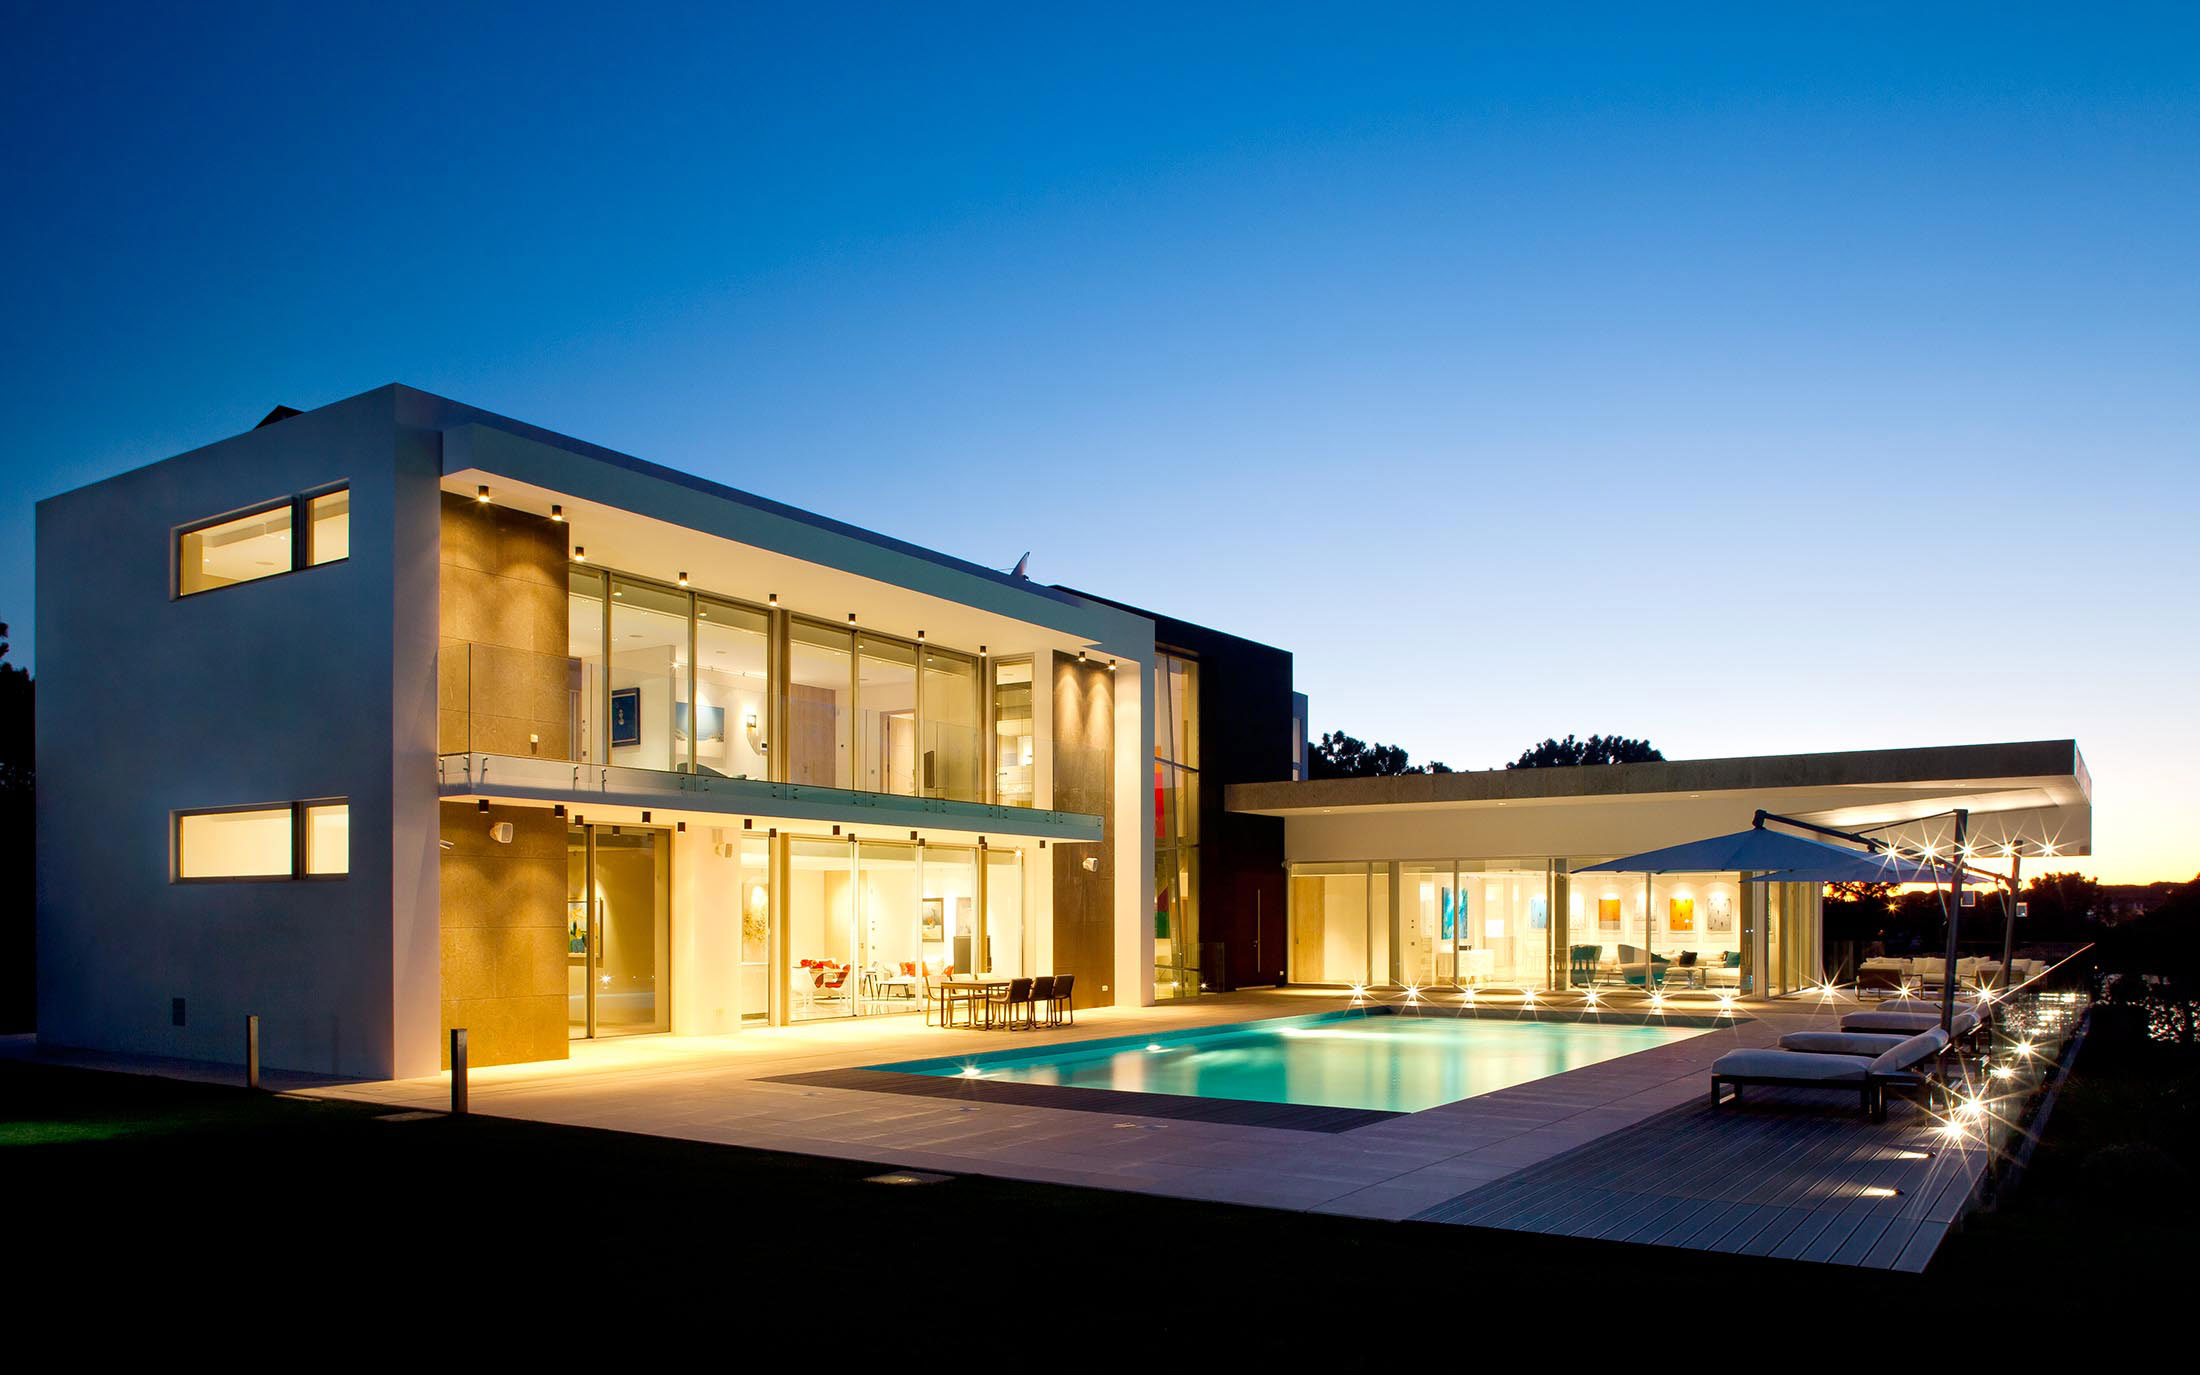 Pool, Terrace, Lighting, Family House in Portugal